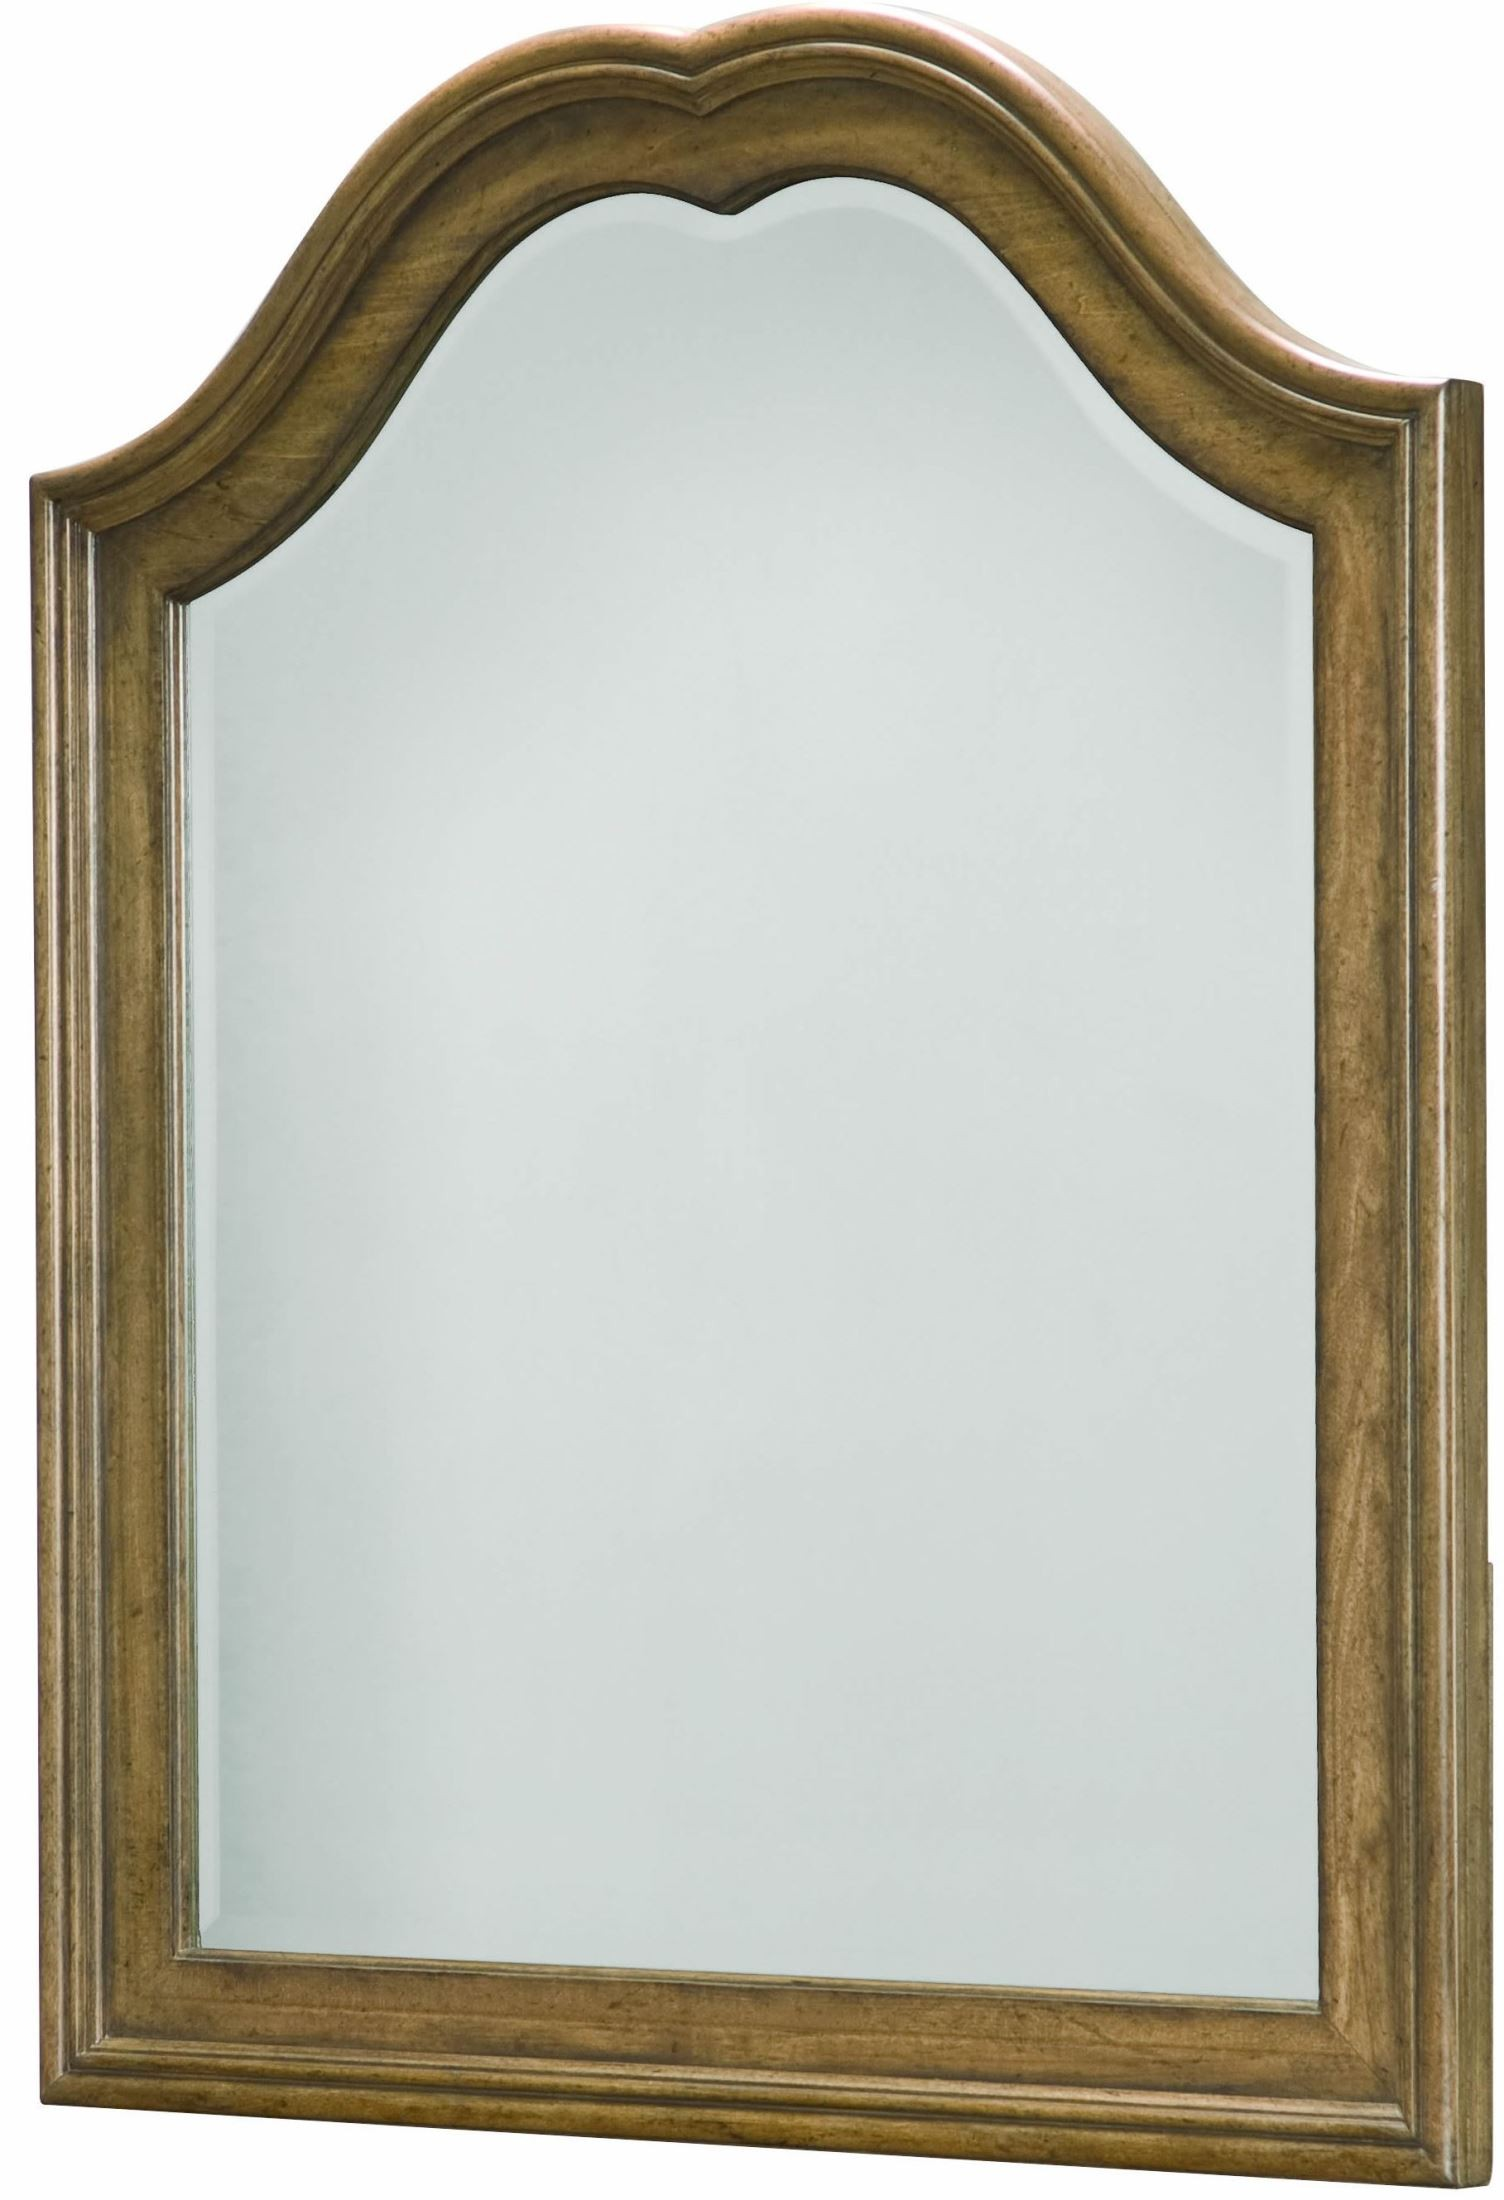 Danielle french laundry arched mirror from legacy kids for Miroir danielle